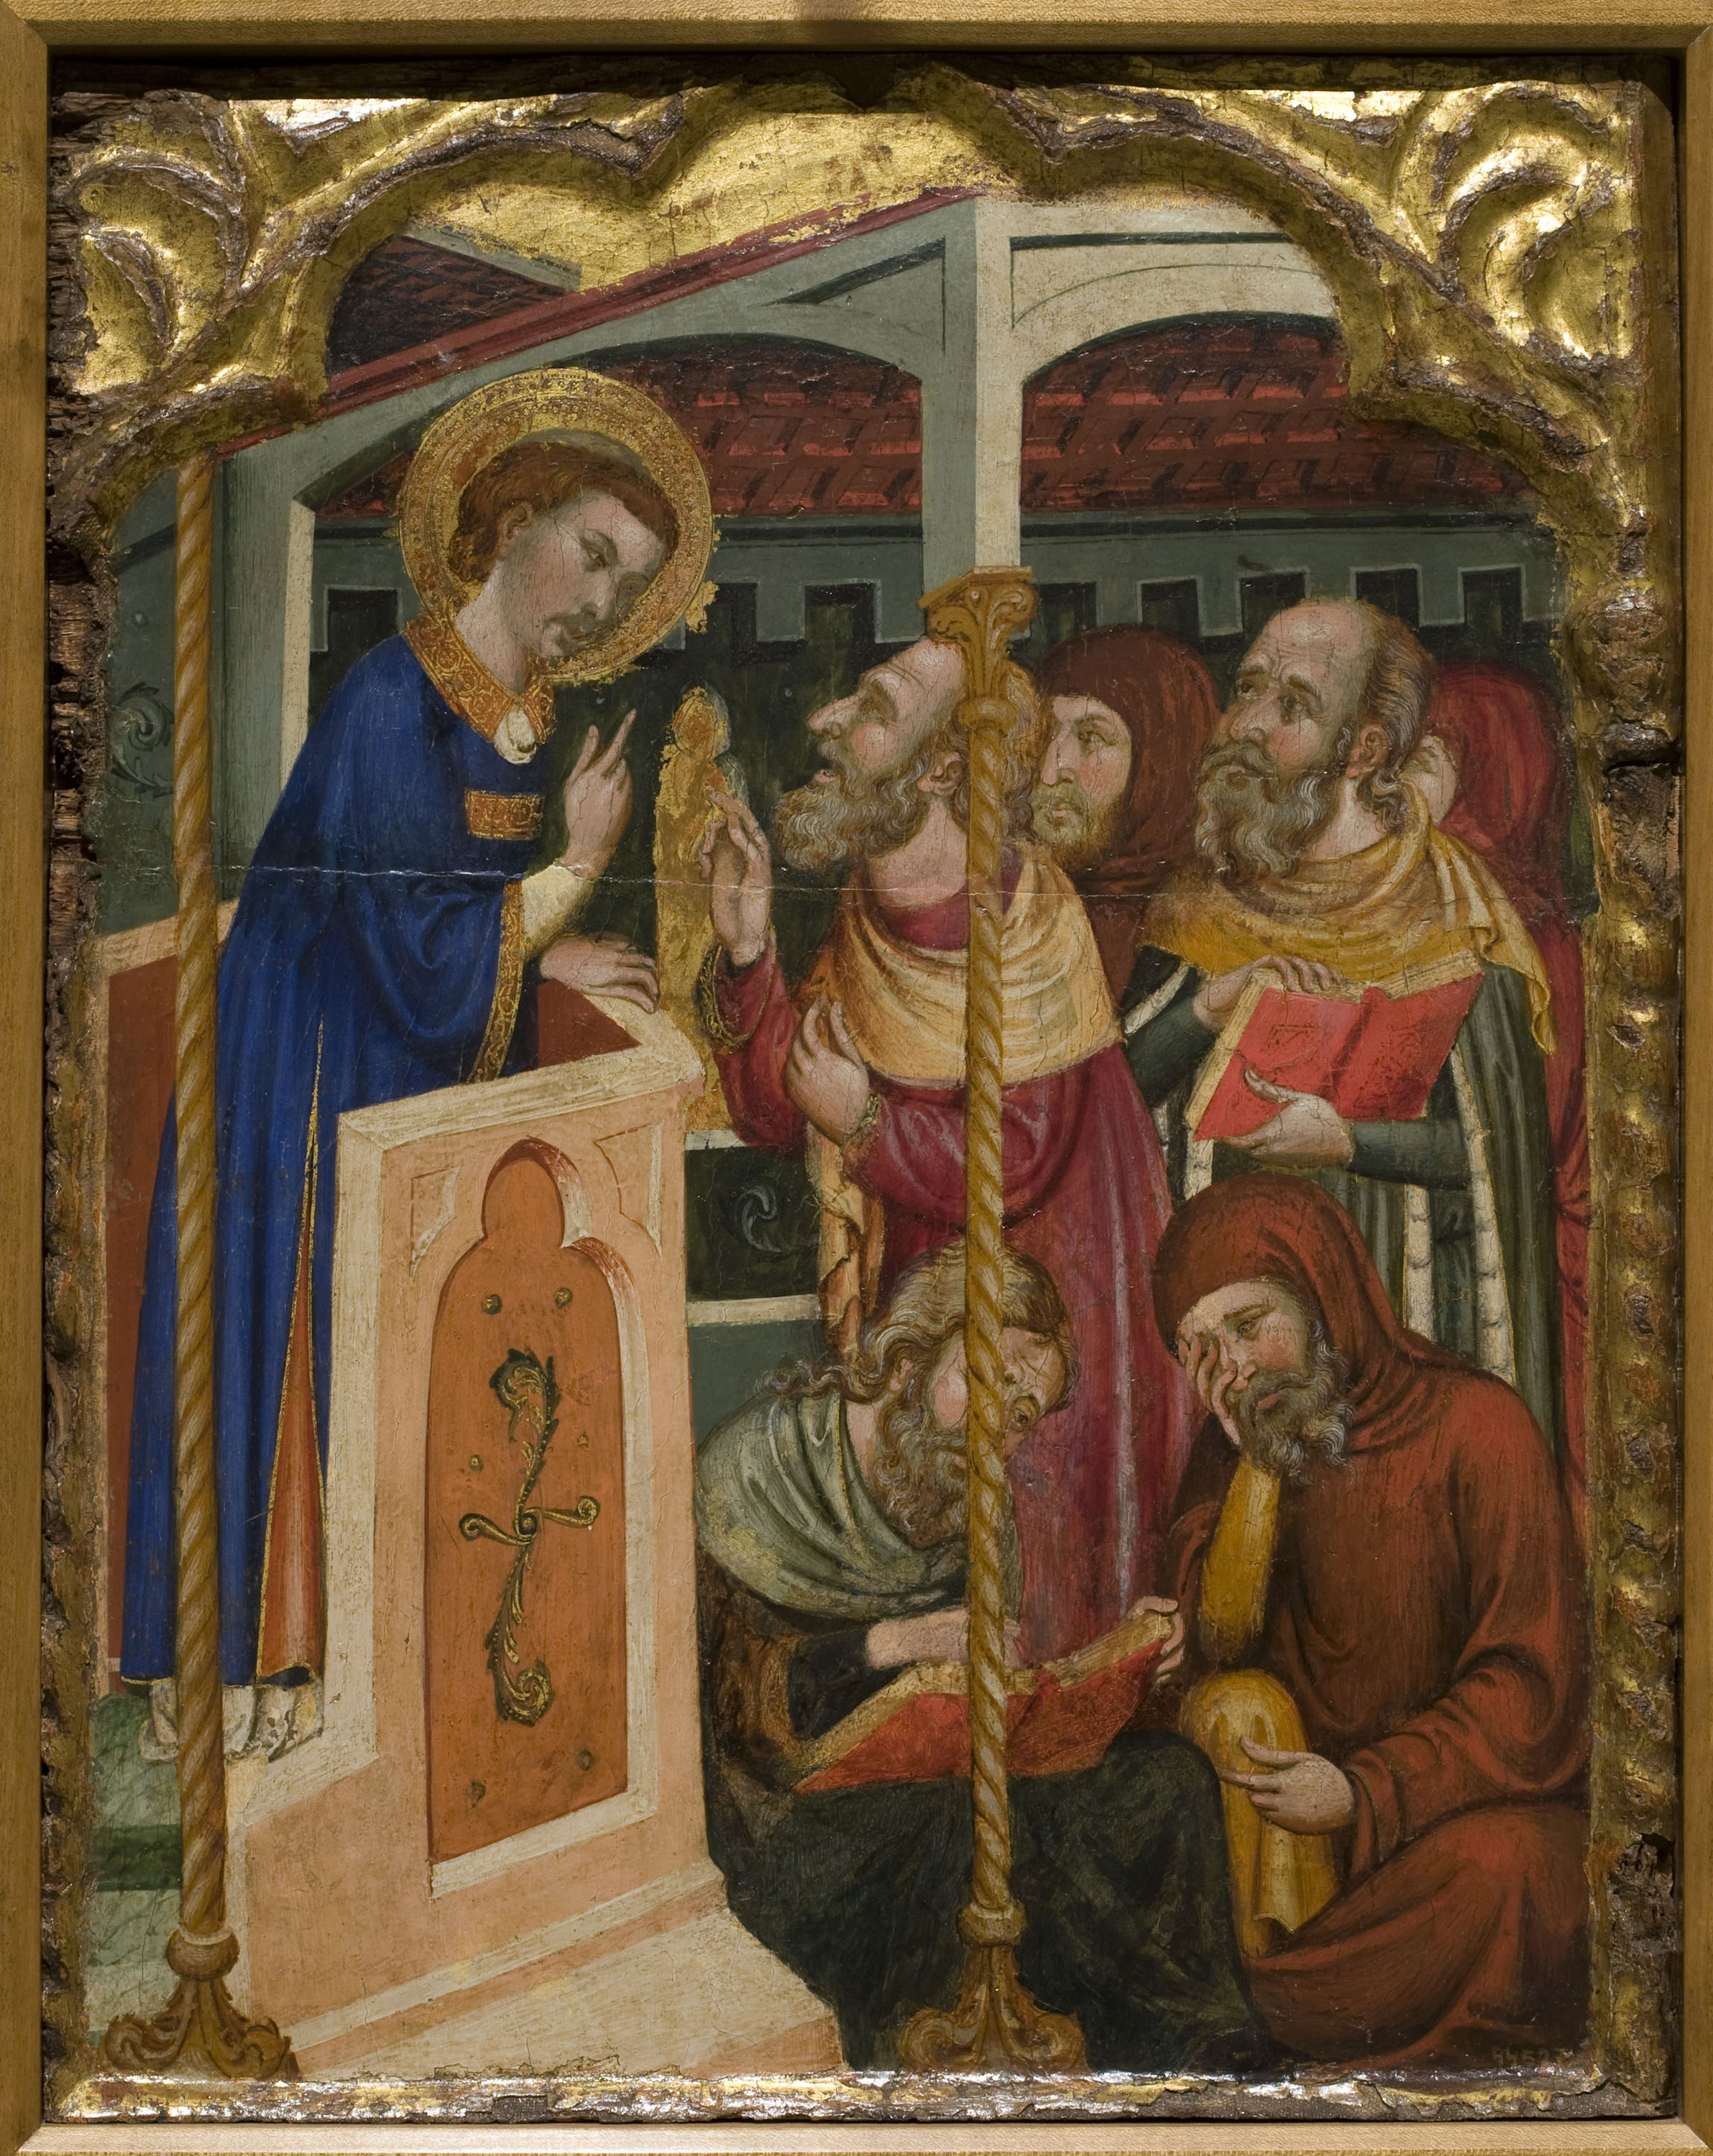 Saint Stephen's Dispute with the Jews